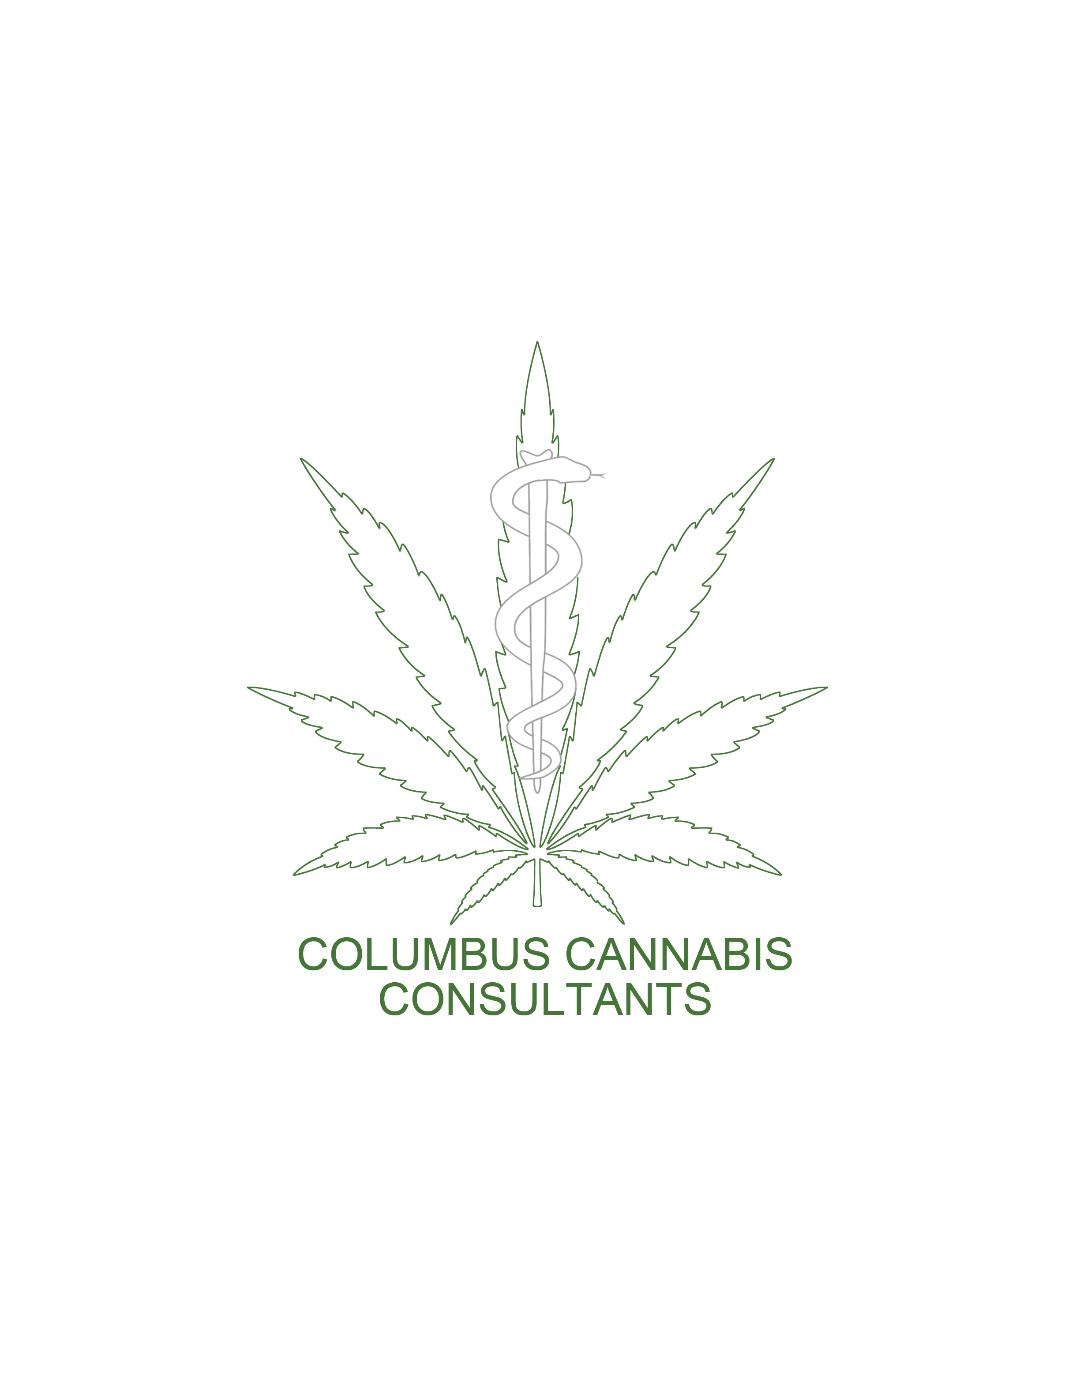 Columbus Cannabis Consultants